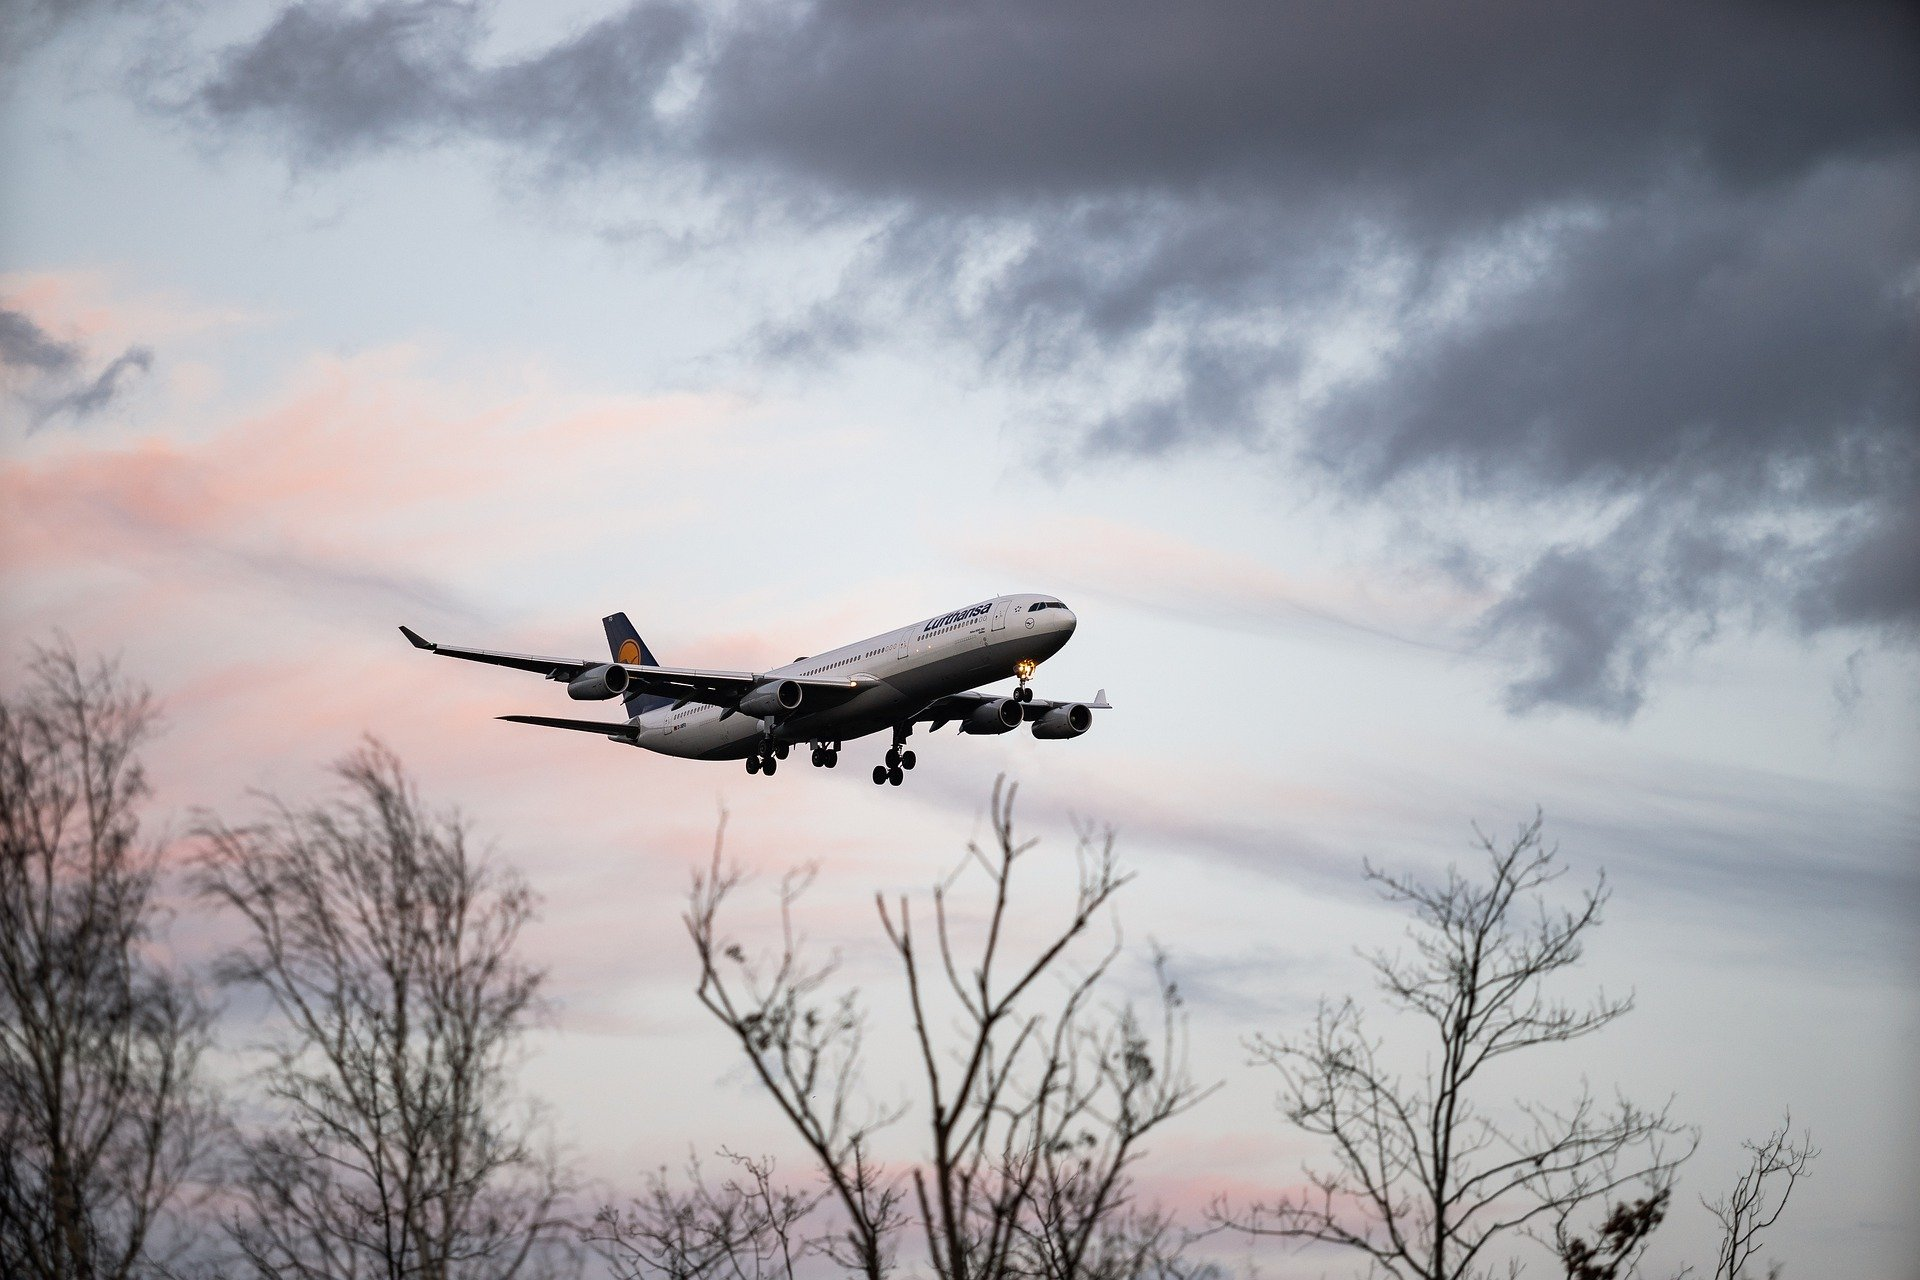 An airplane flying   Source: Pixabay